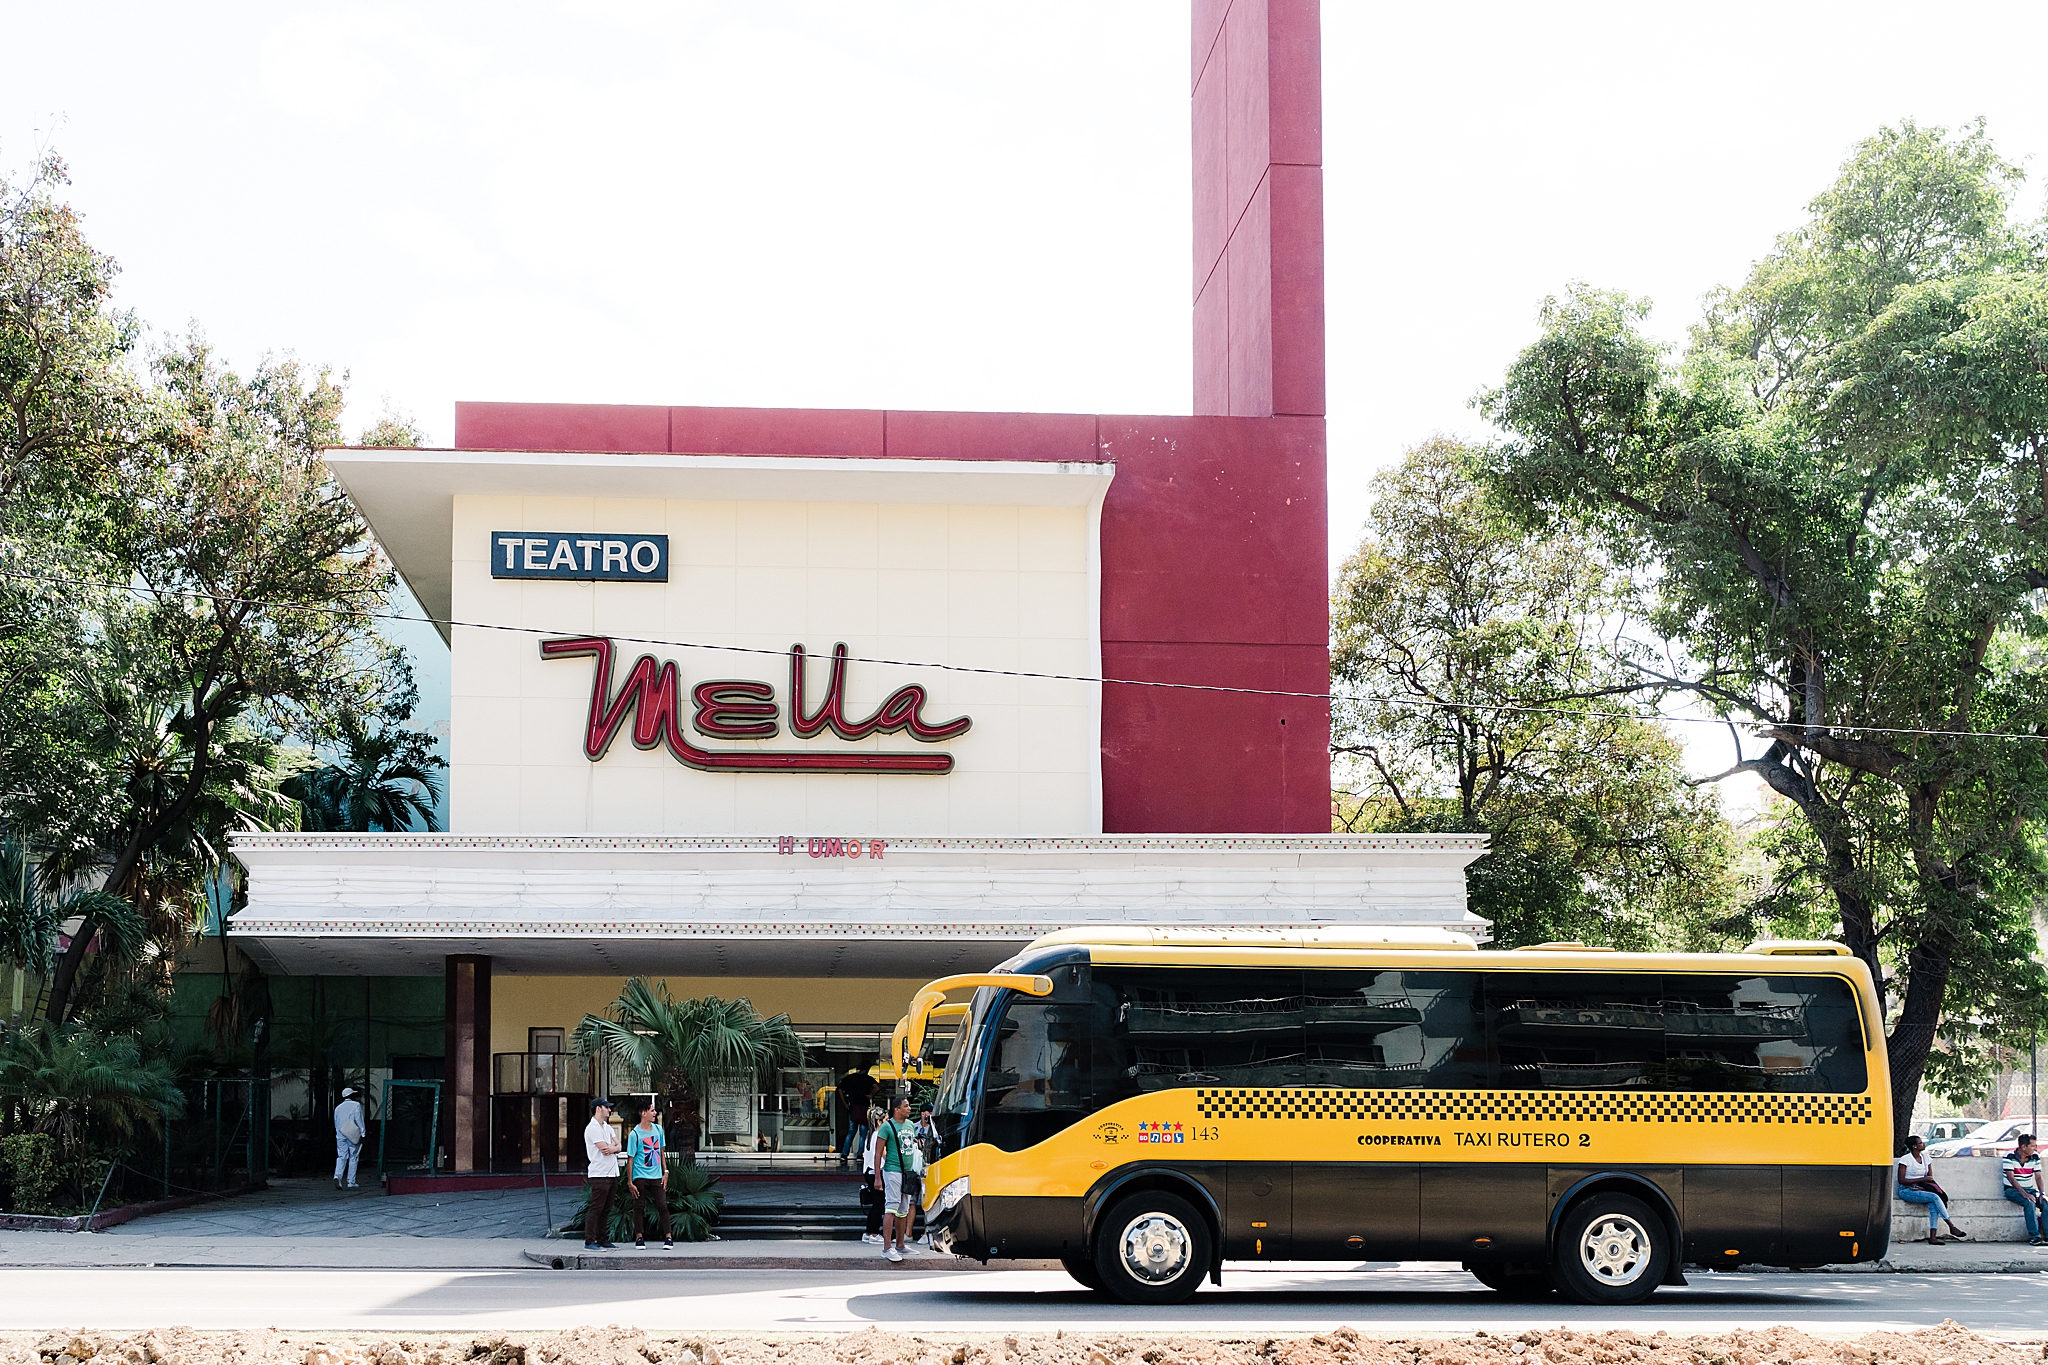 The mid-century Nella theater in Vedado, havana was right around the corner from our Airbnb.